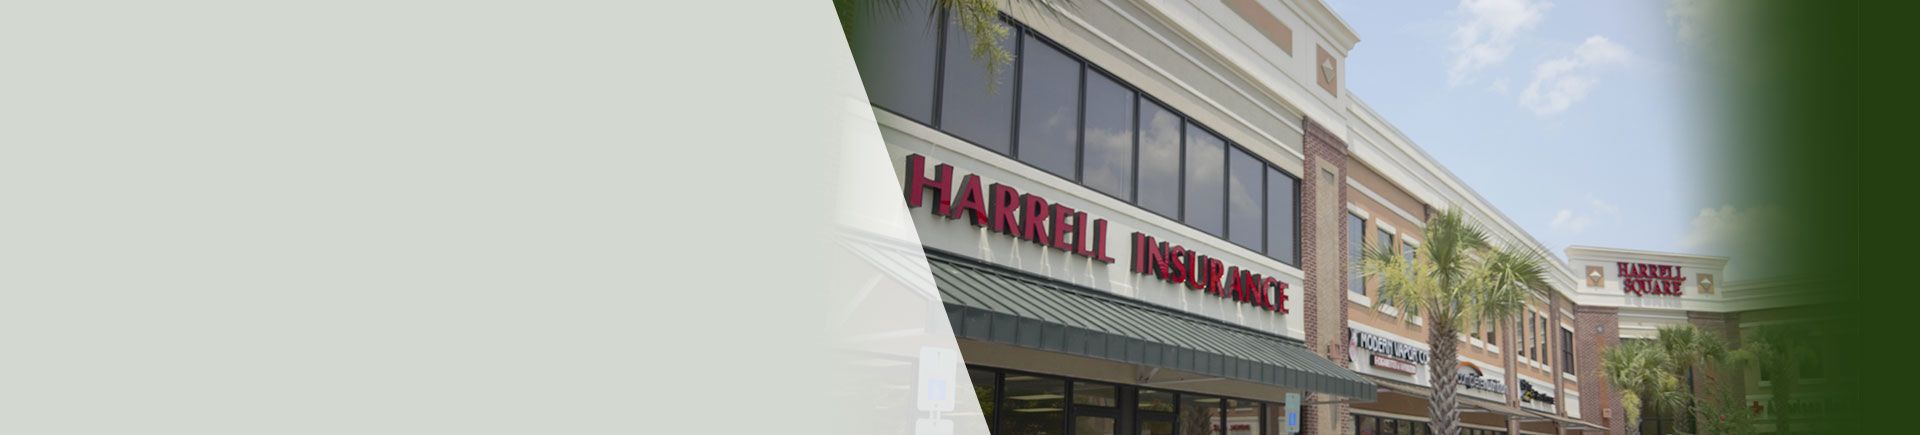 Harrell Insurance Office